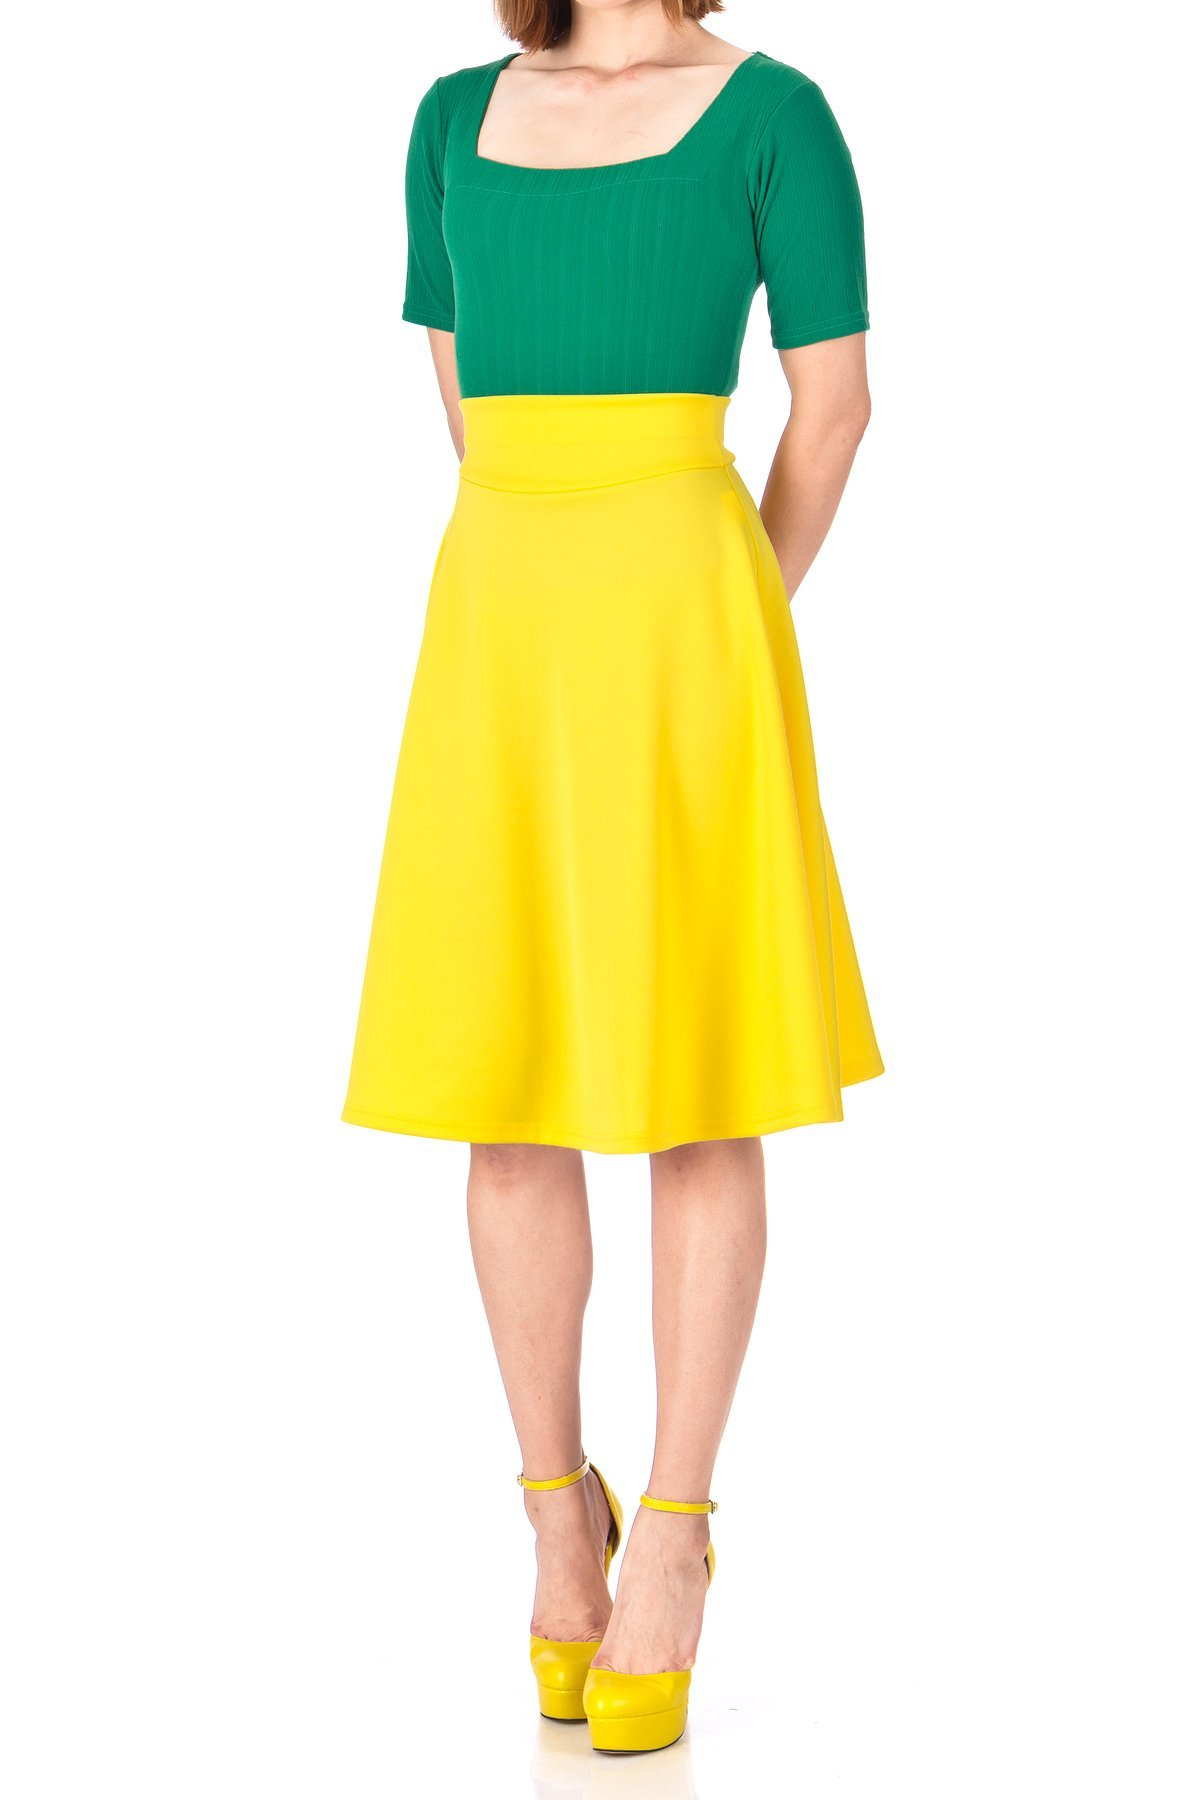 Stunning Wide High Waist A line Full Flared Swing Office Dance Party Casual Circle Skater Midi Skirt Yellow 01